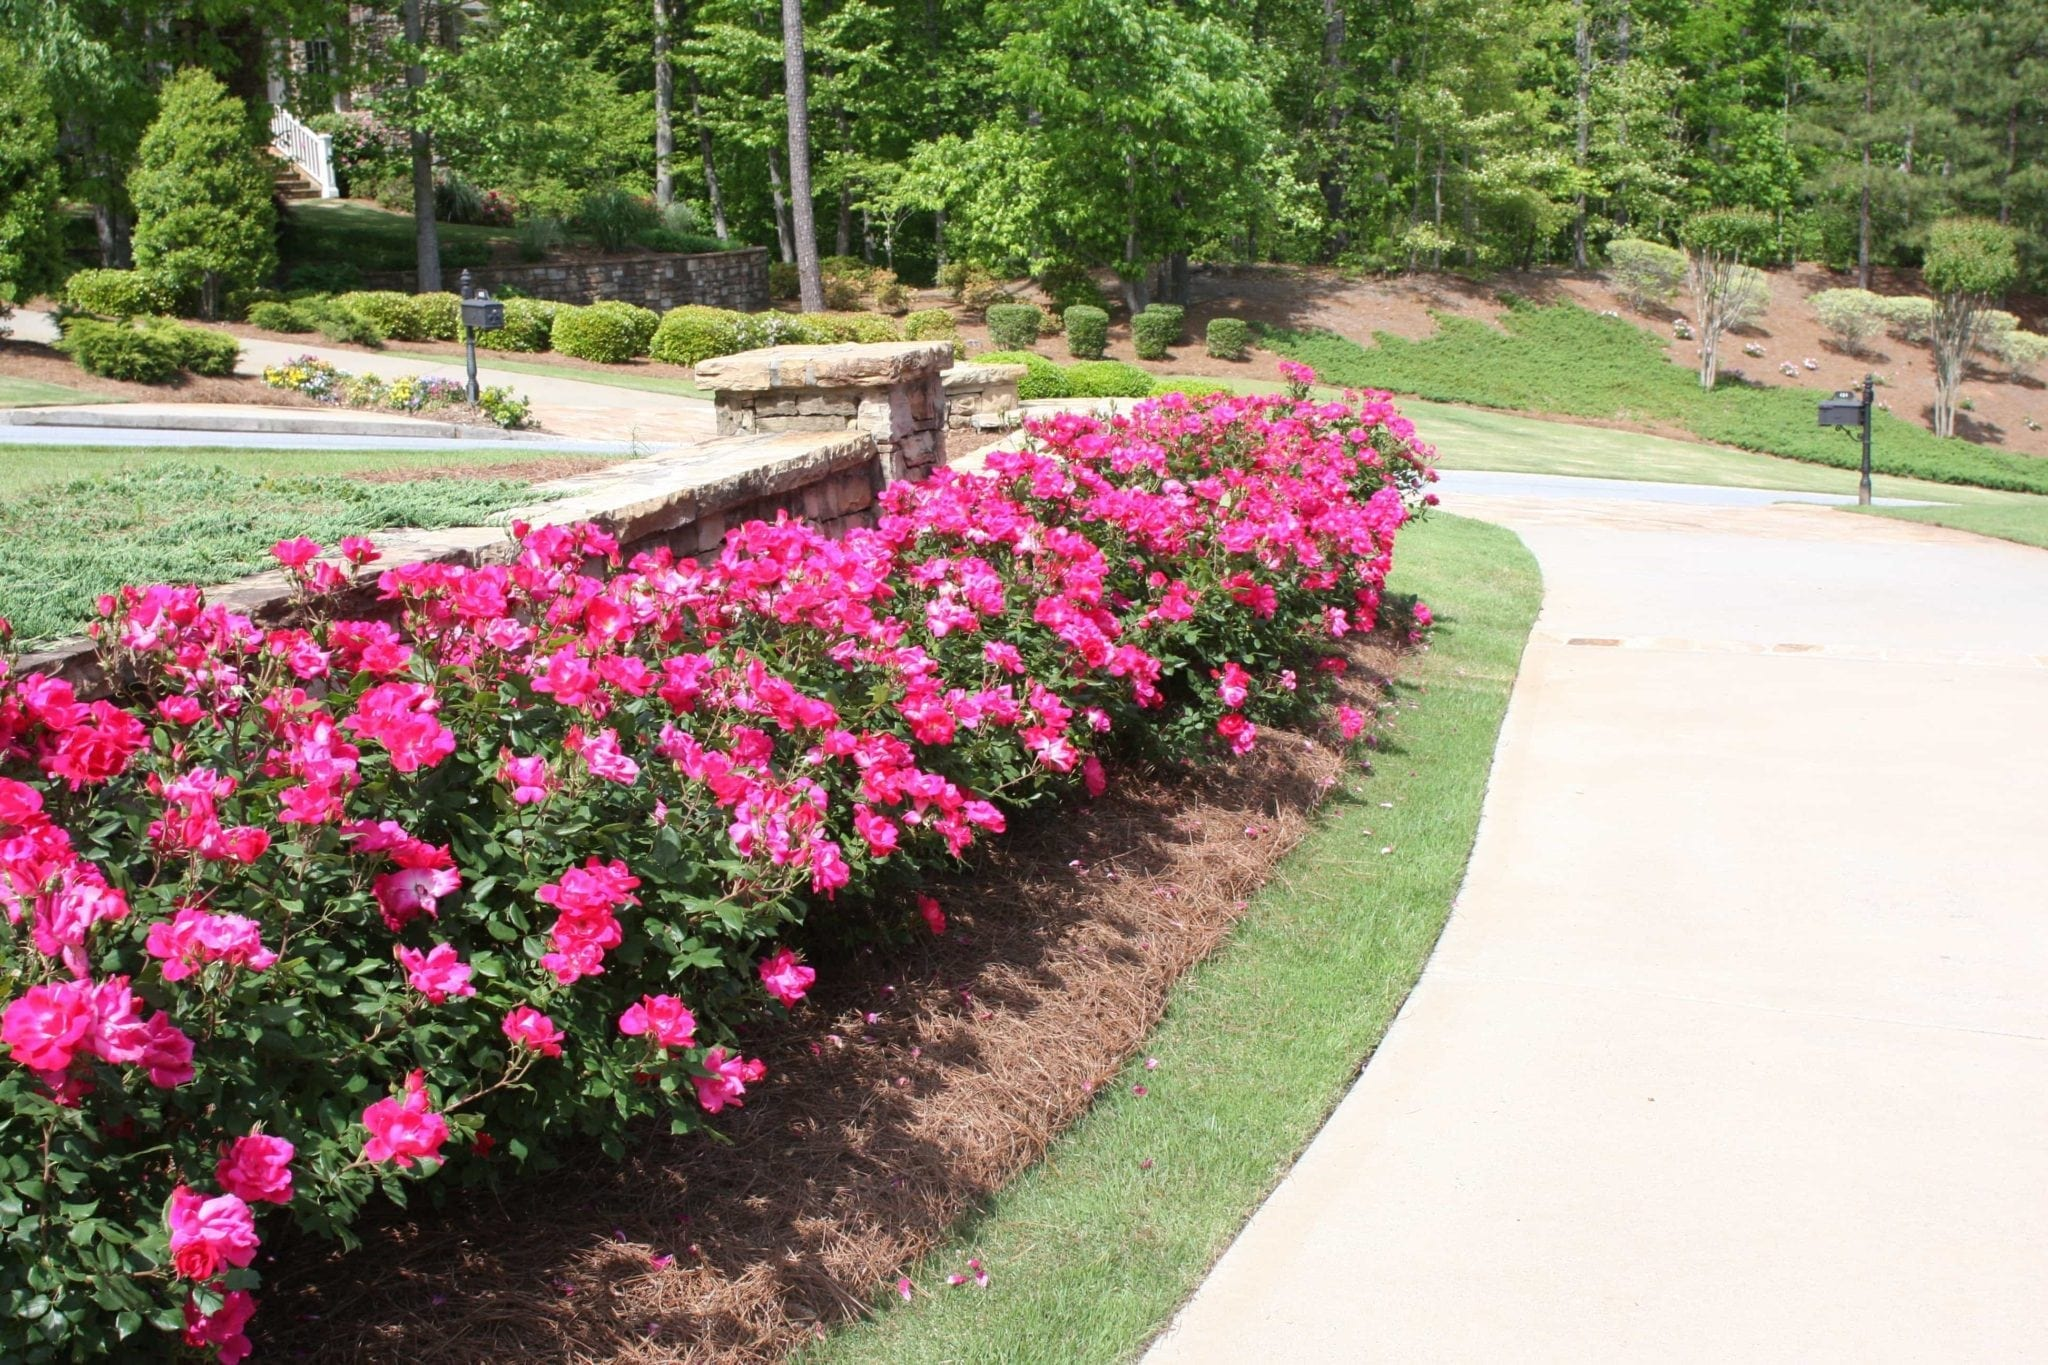 Border plants for your yard. Plants with a lot of colorful blooms.